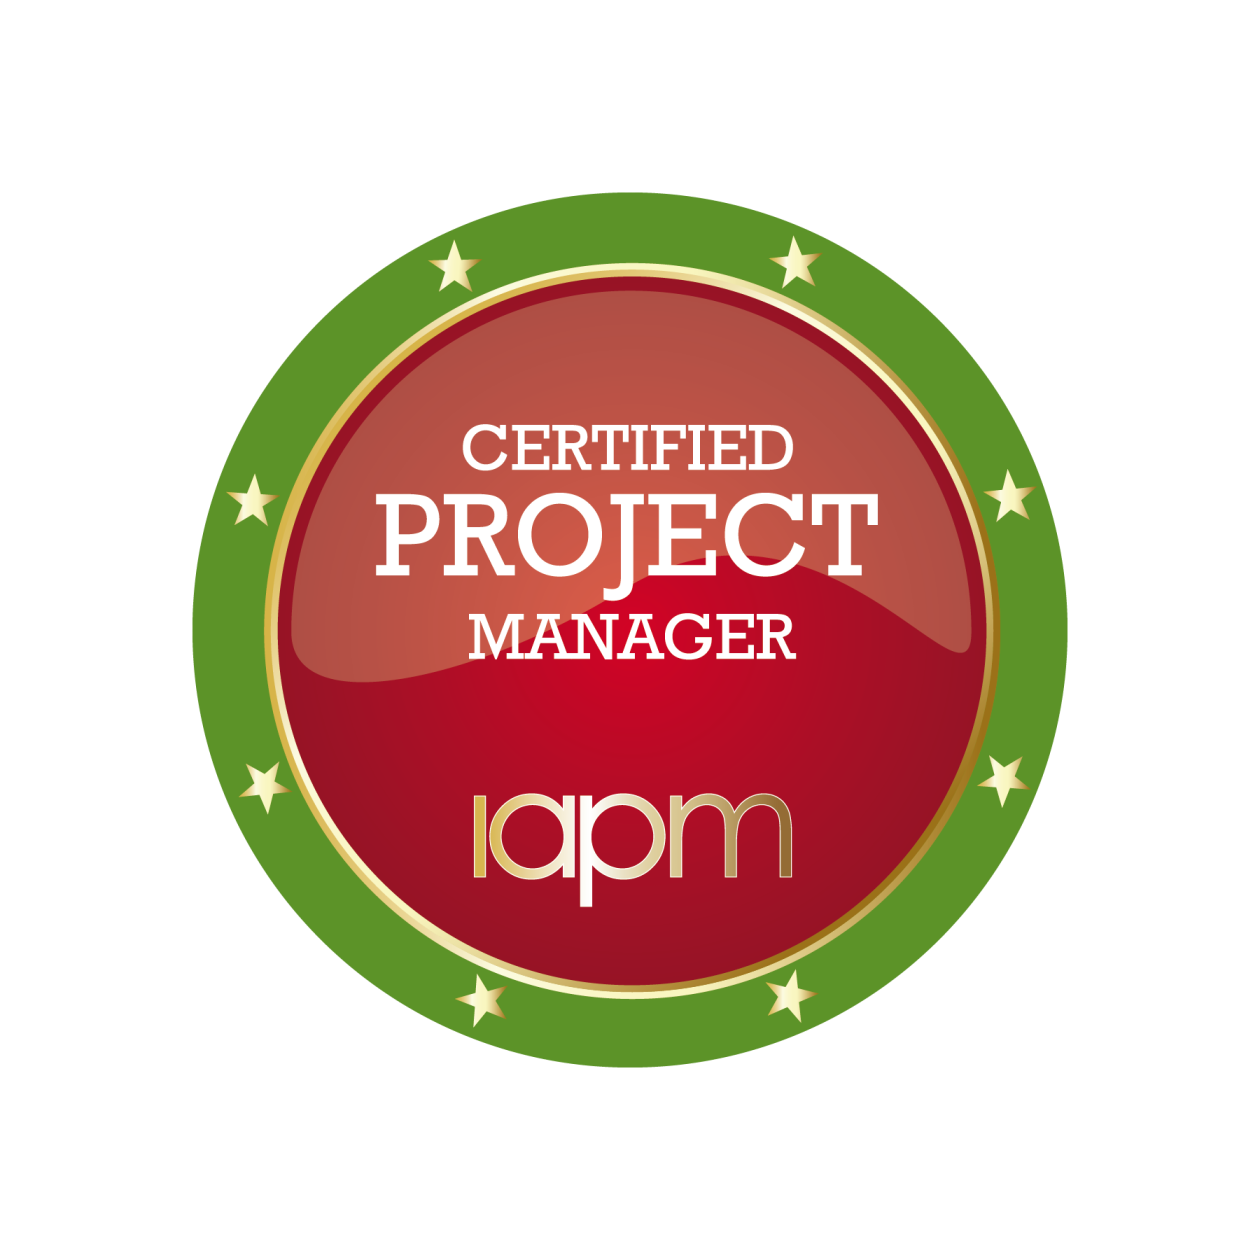 All information about the Certified Project Manager (IAPM) certification